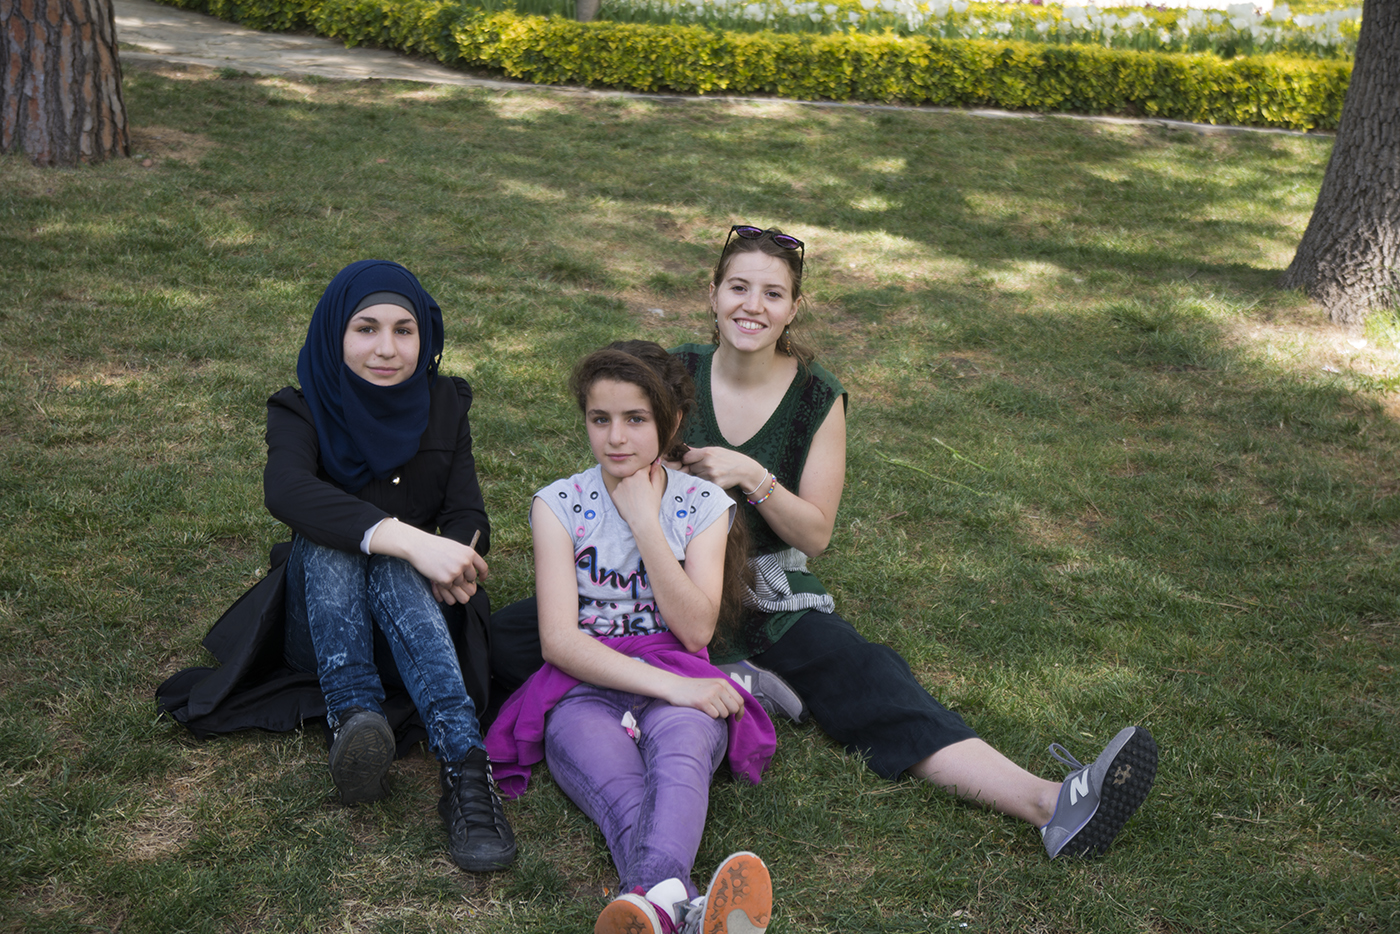 In this photo, Beatrice is sitting with Ravan, age 13 and her younger sister Cuud, age 12. Both of these sweet girls can speak a little English, more than other students in the class. This was Beatrice's last outing with the kids and a nice time to really connect, braid hair, and relax at Emirgan Park.